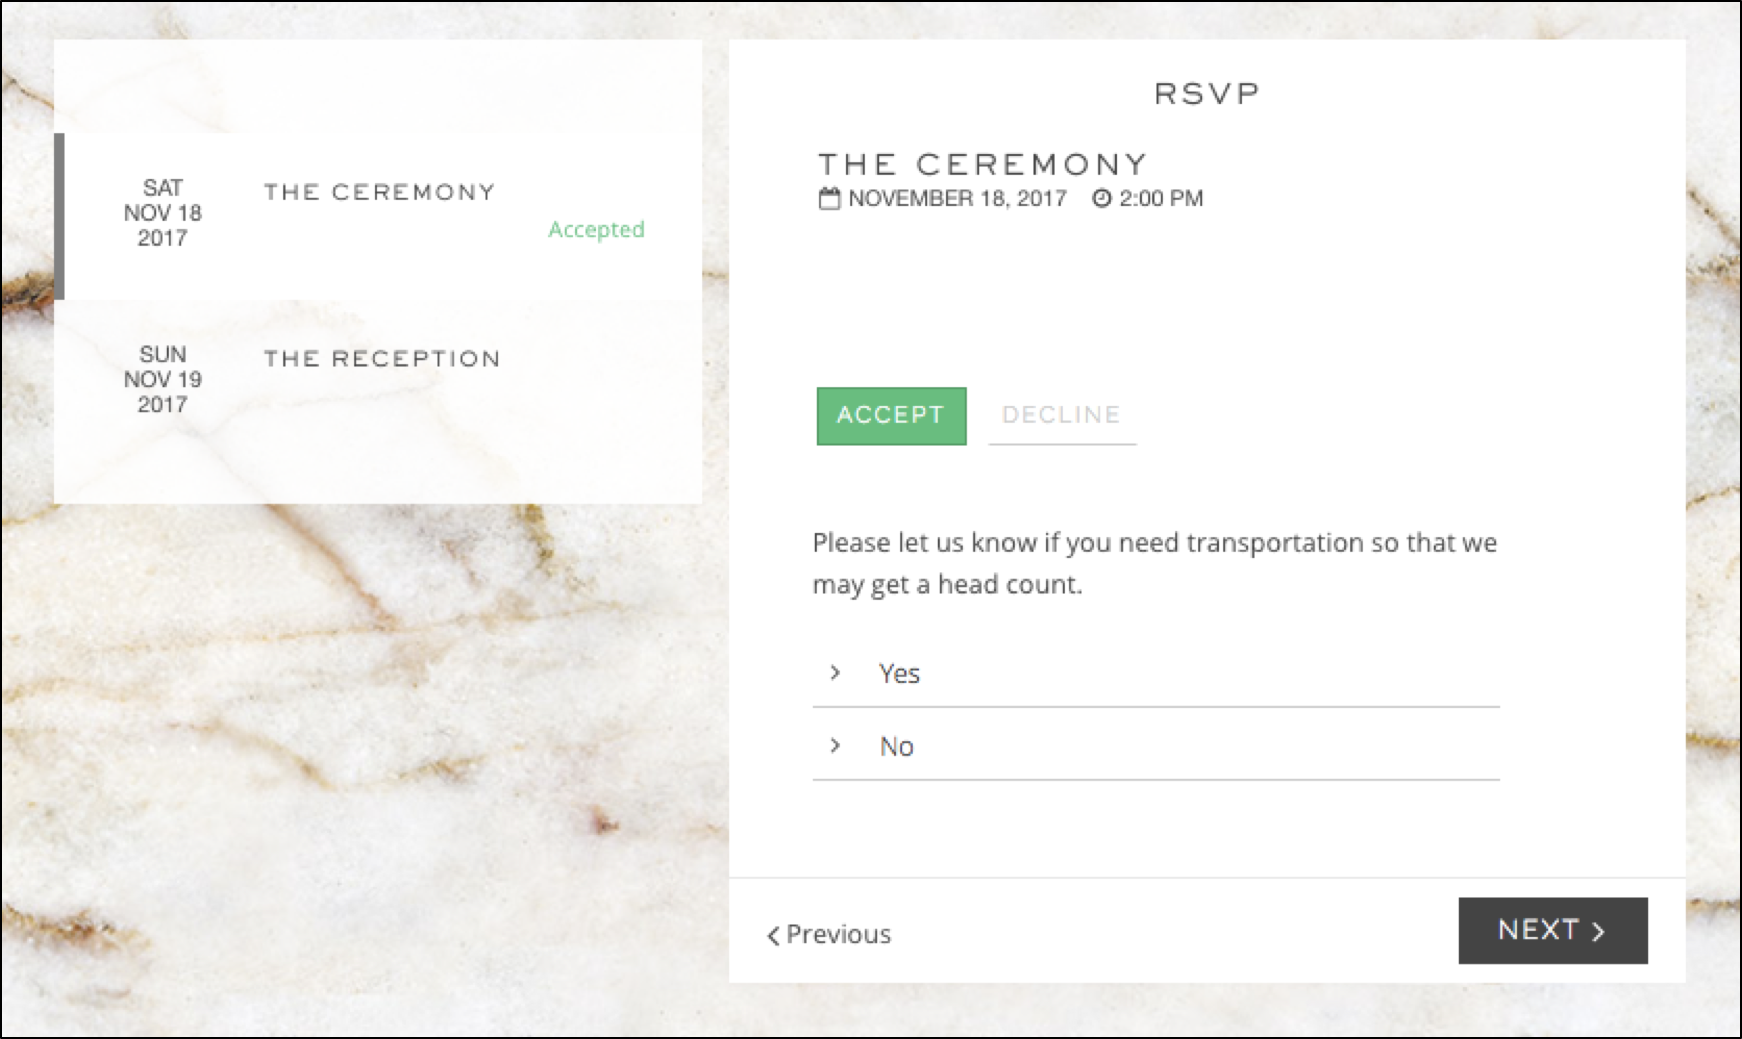 Custom_RSVP_Request.png